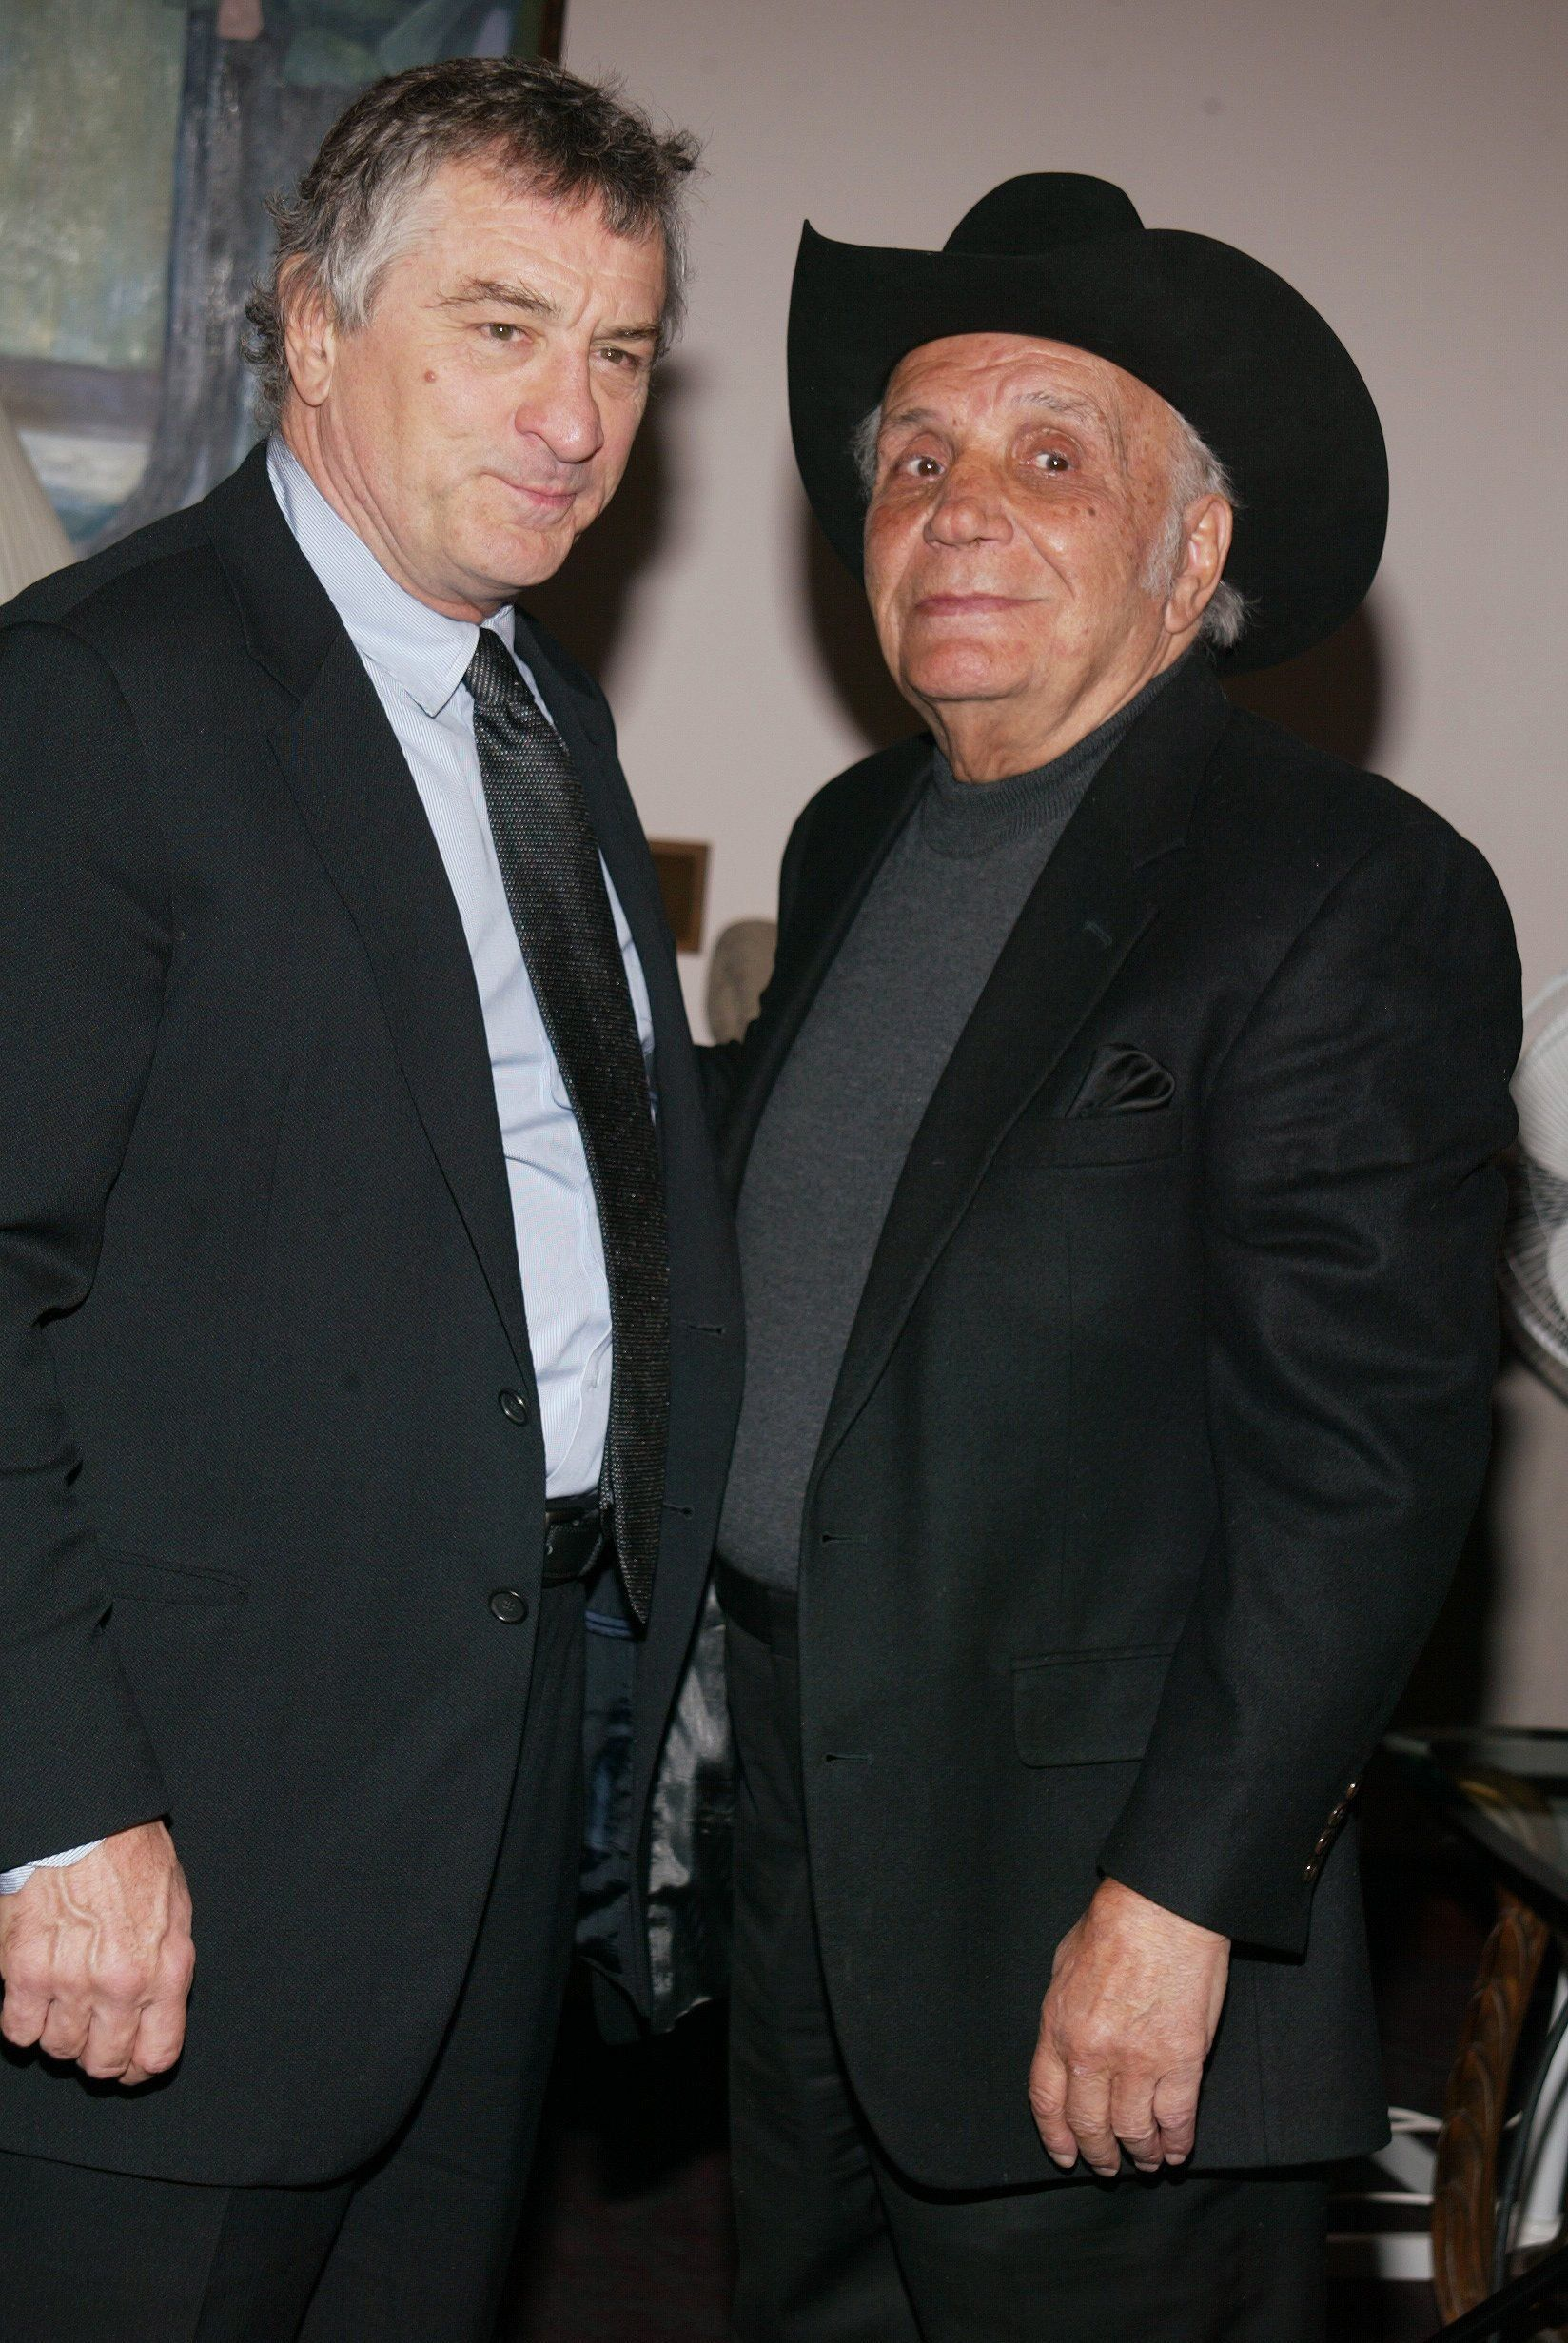 Robert De Niro, Jake LaMotta during MGM Home Entertainment celebrates the 25th Anniversary of 'Raging Bull' at Ziegfeld Theater in New York, New York, United States. (Photo by Sylvain Gaboury/FilmMagic)